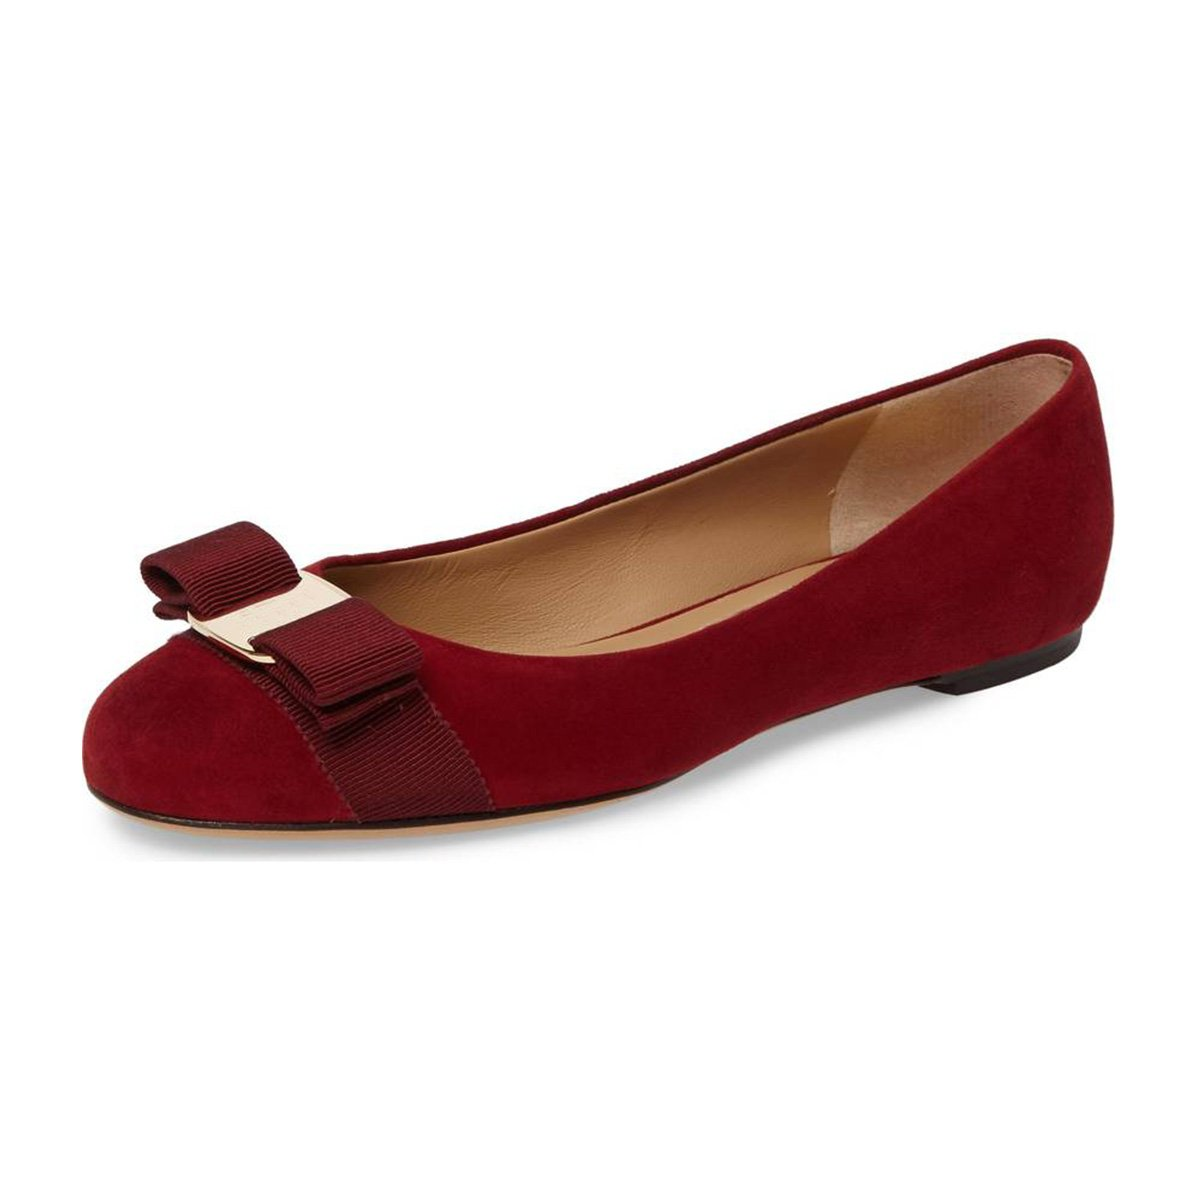 FSJ Women Cute Bowknot Round Toe Ballet Flats Slip On Casual Office Comfy Pumps Shoes Size 4-15 US B077P9VMQ8 9.5 B(M) US|Red-suede